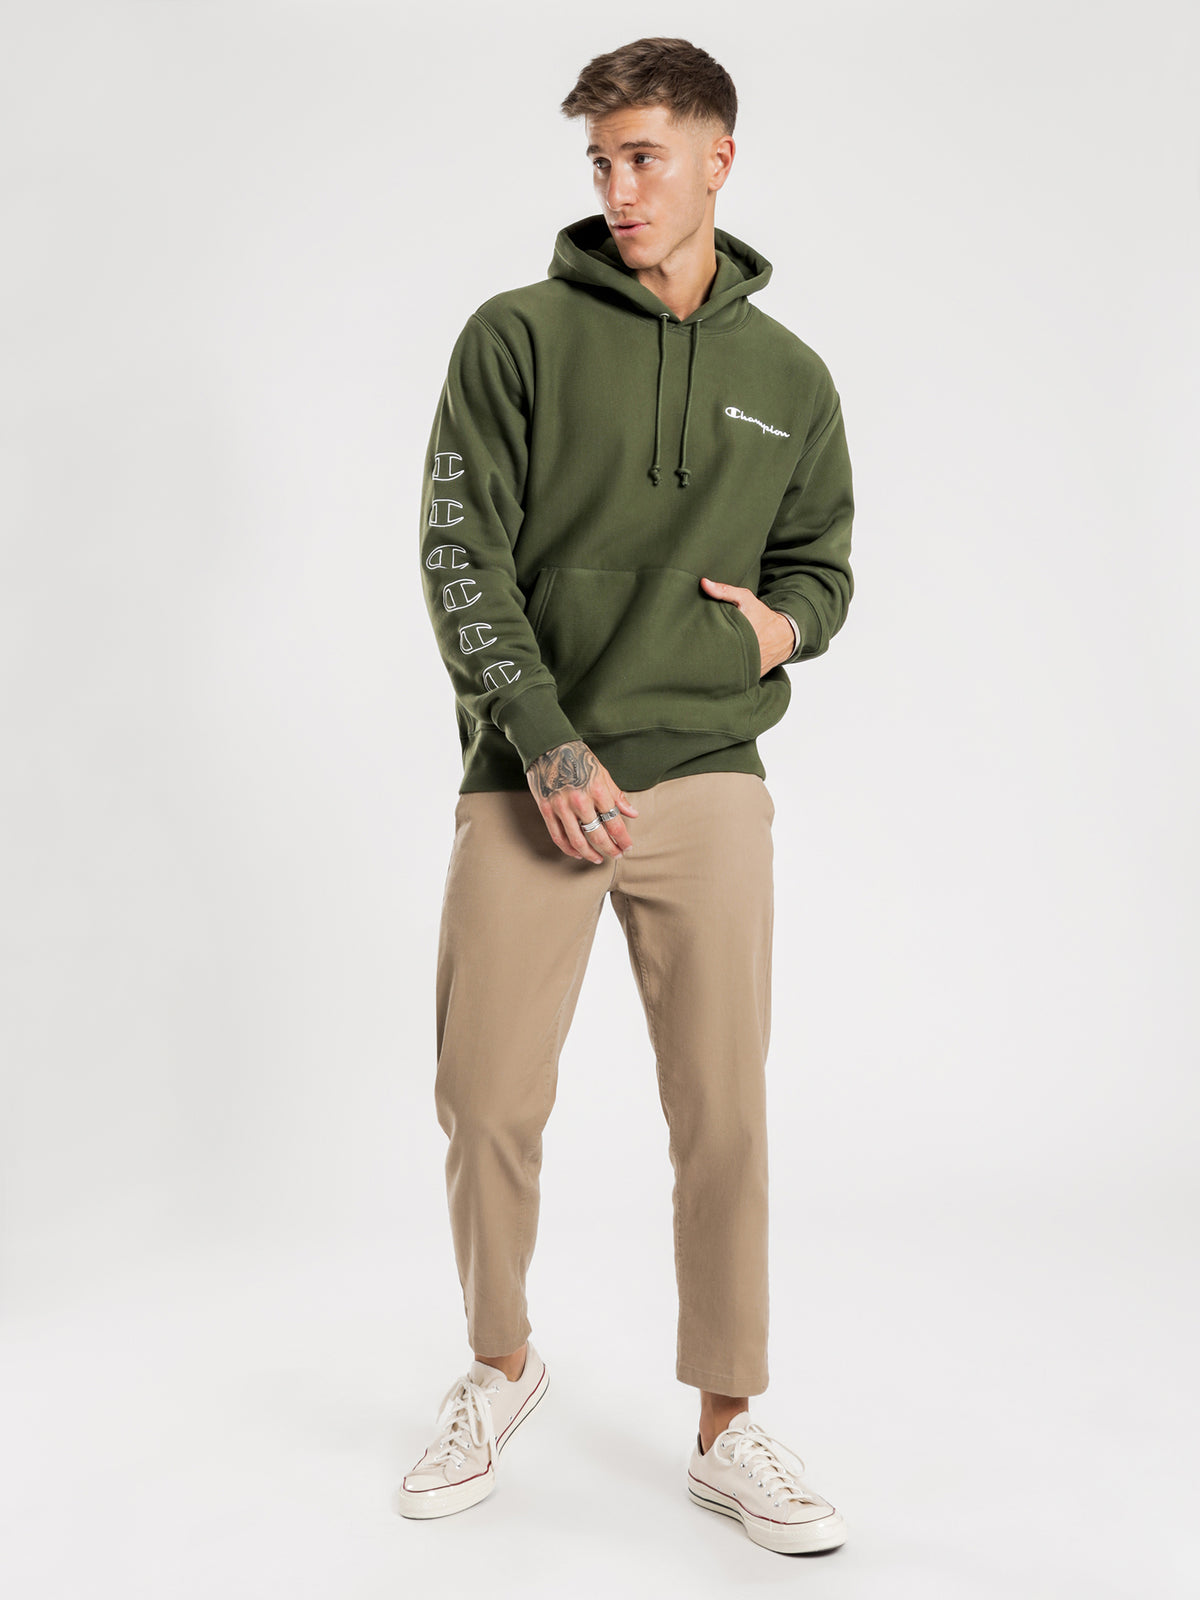 Reverse Weave Graphic Hoodie in Green